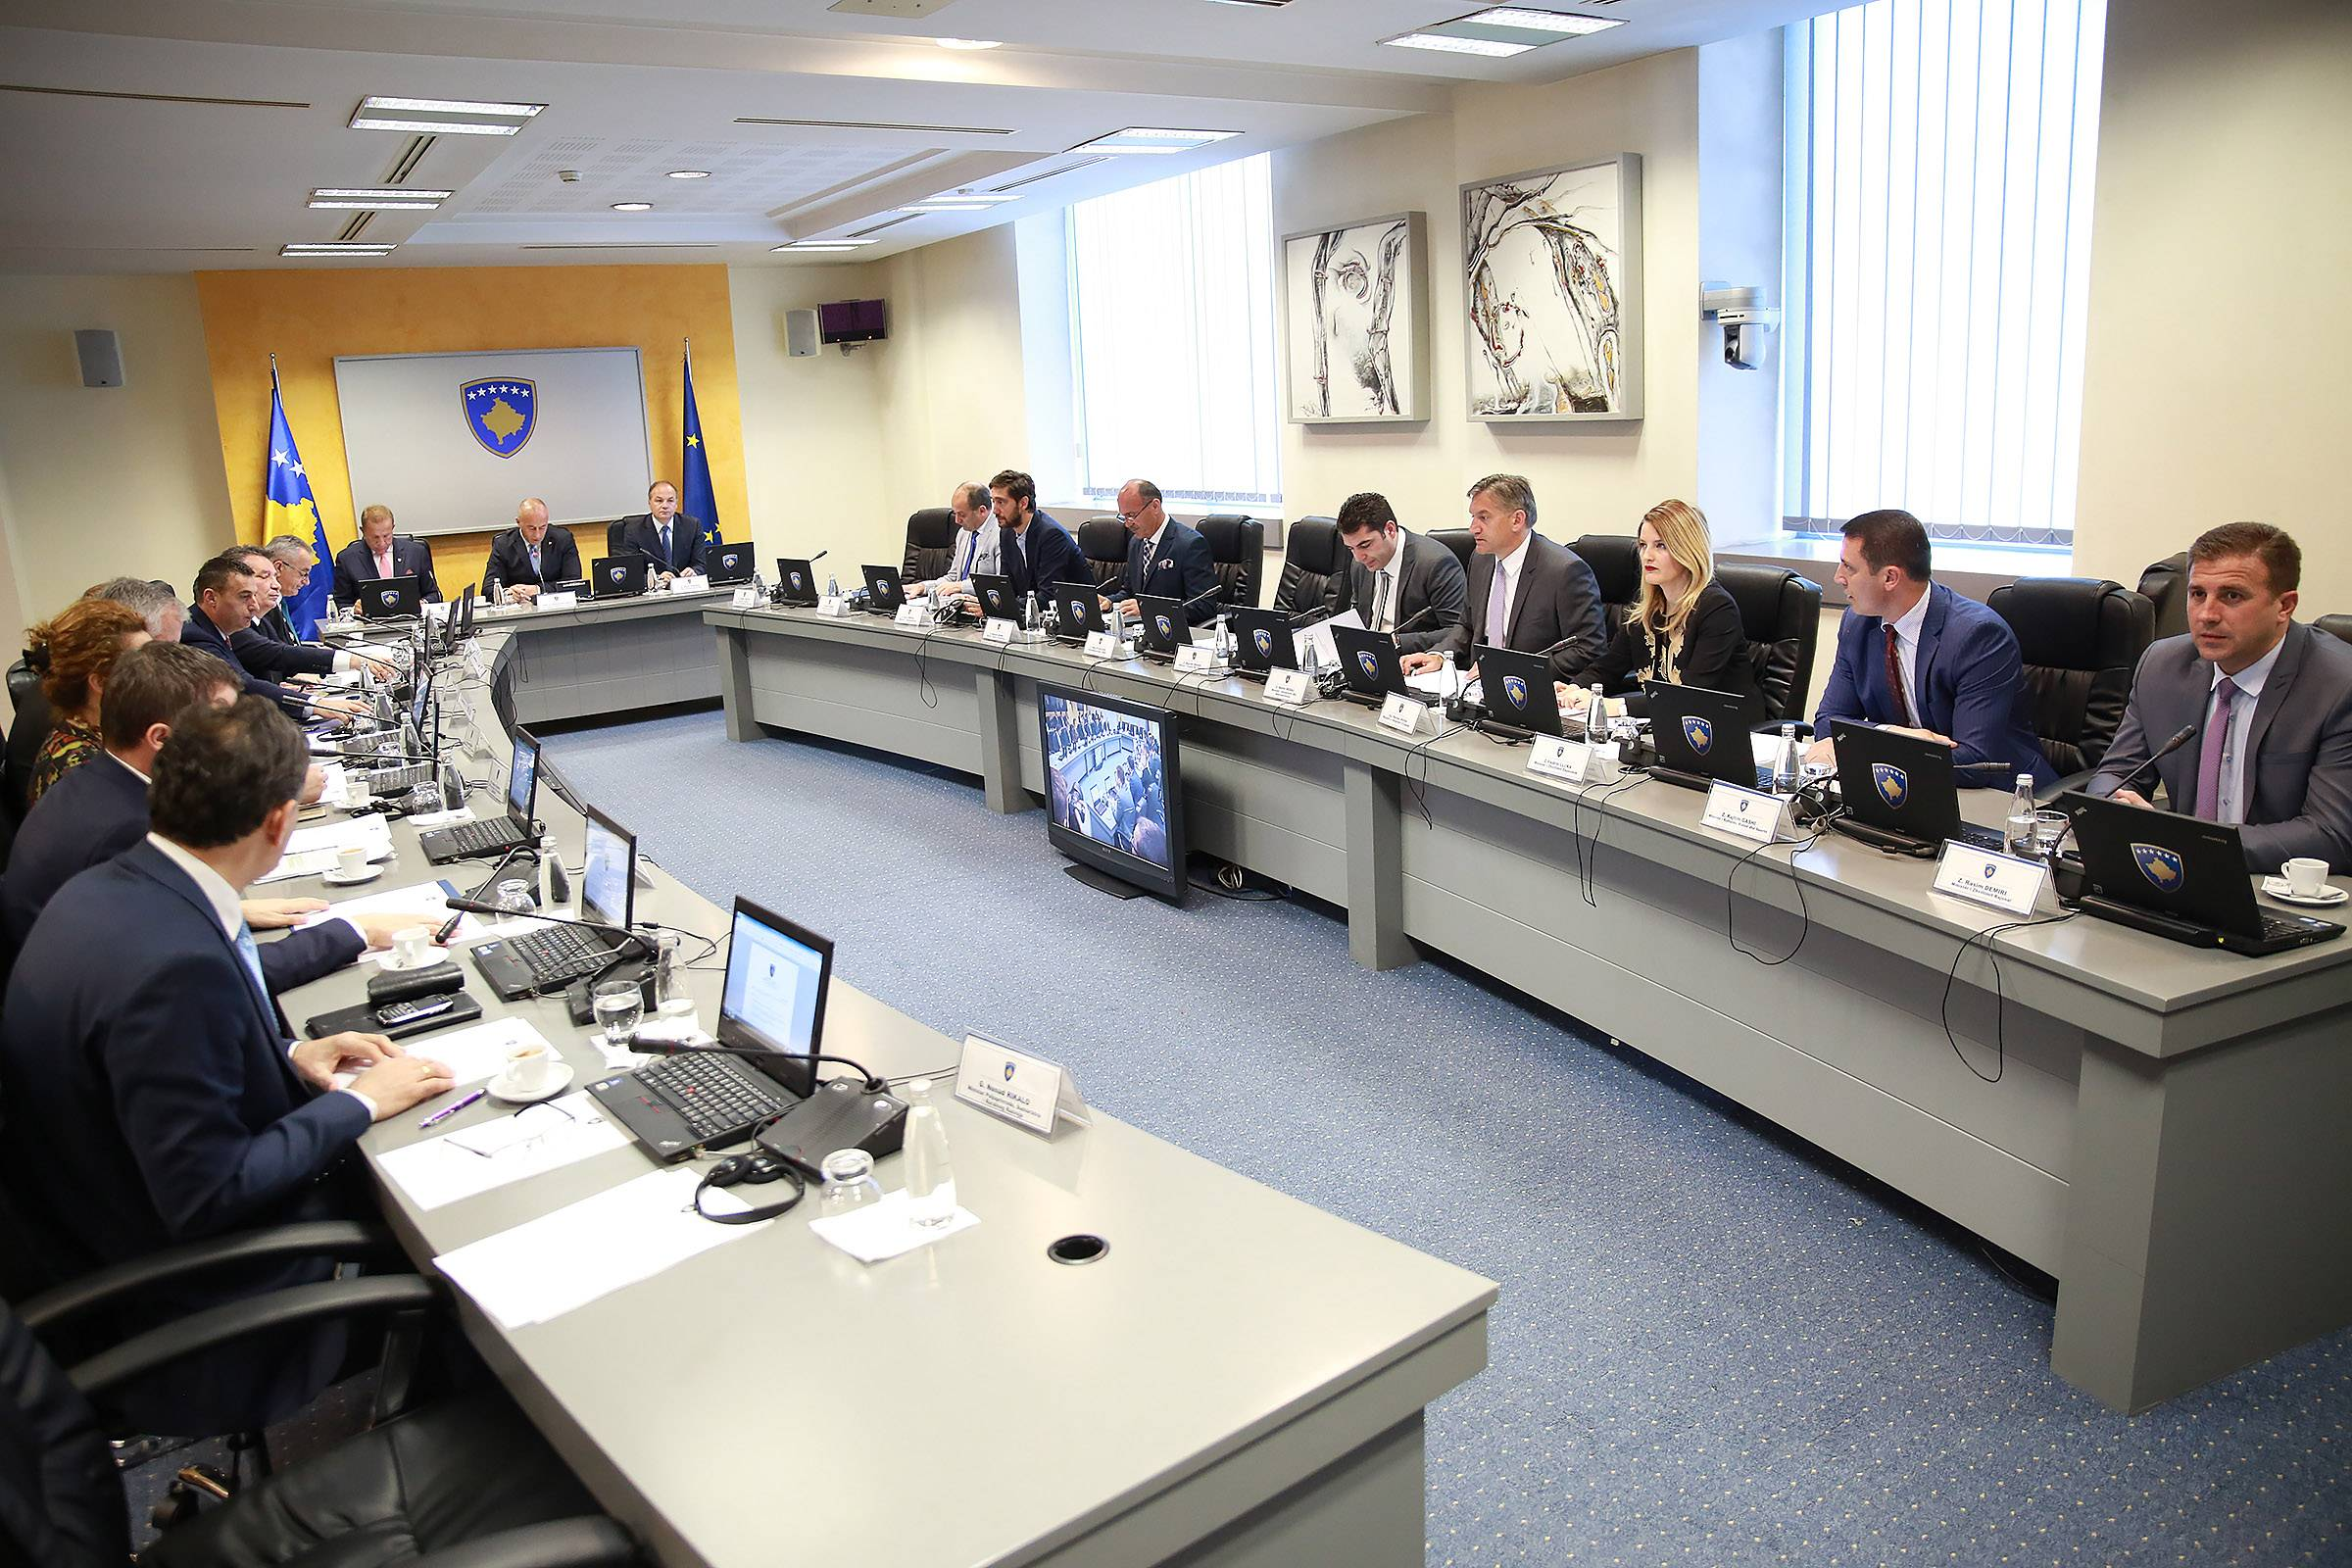 Minister Hoxha presented to the Government the recommendations of the Country Report, Progress depends on us